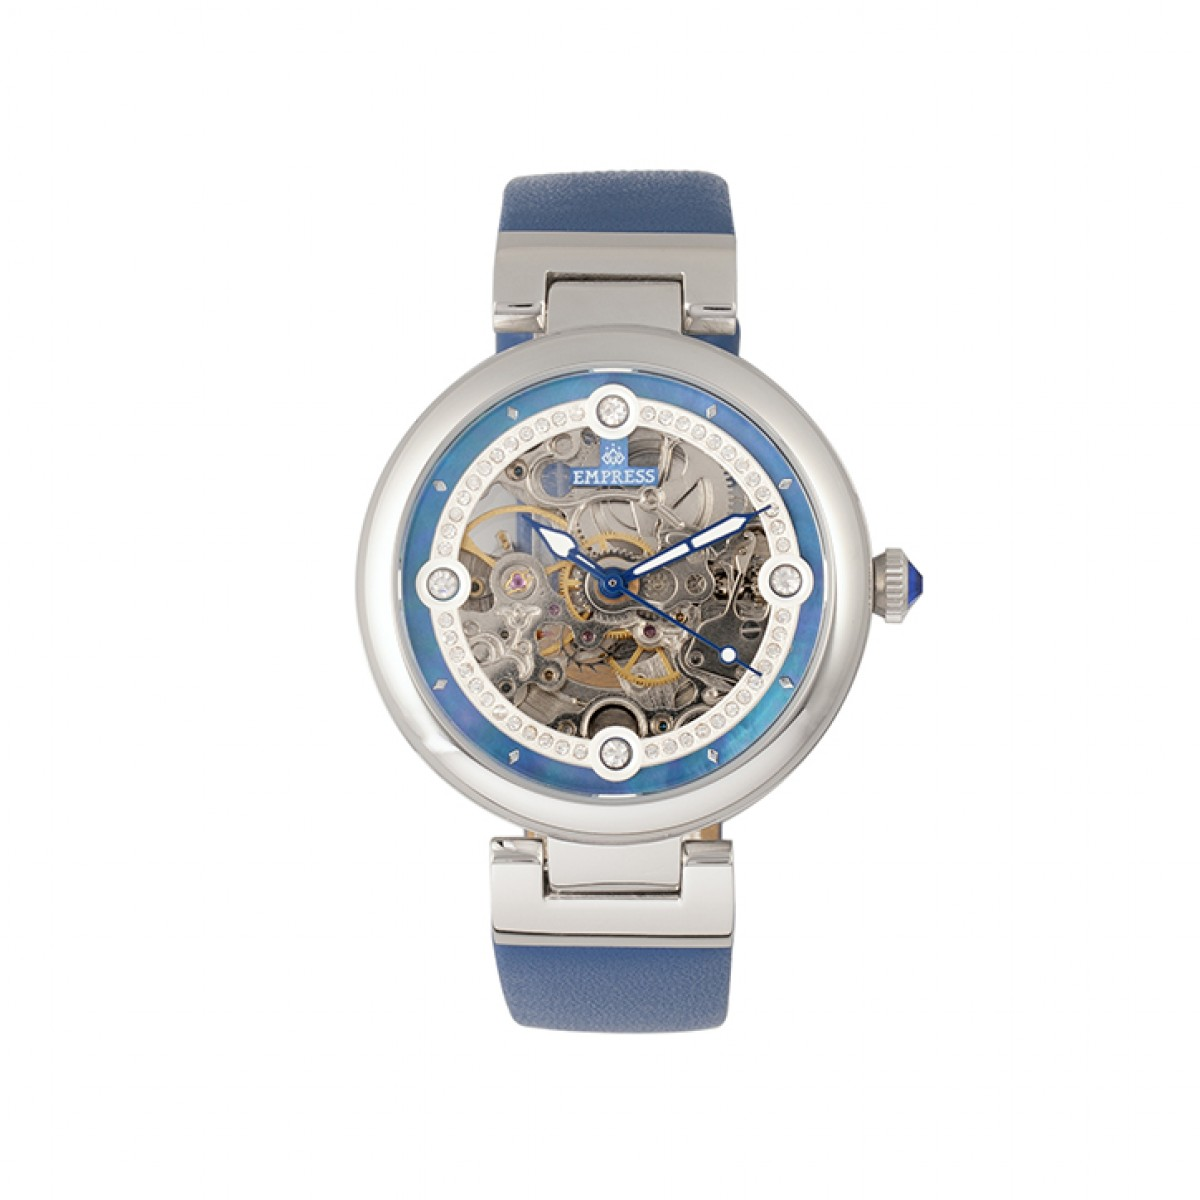 Seconds Steel Adelaide Empress Automatic Timepieces